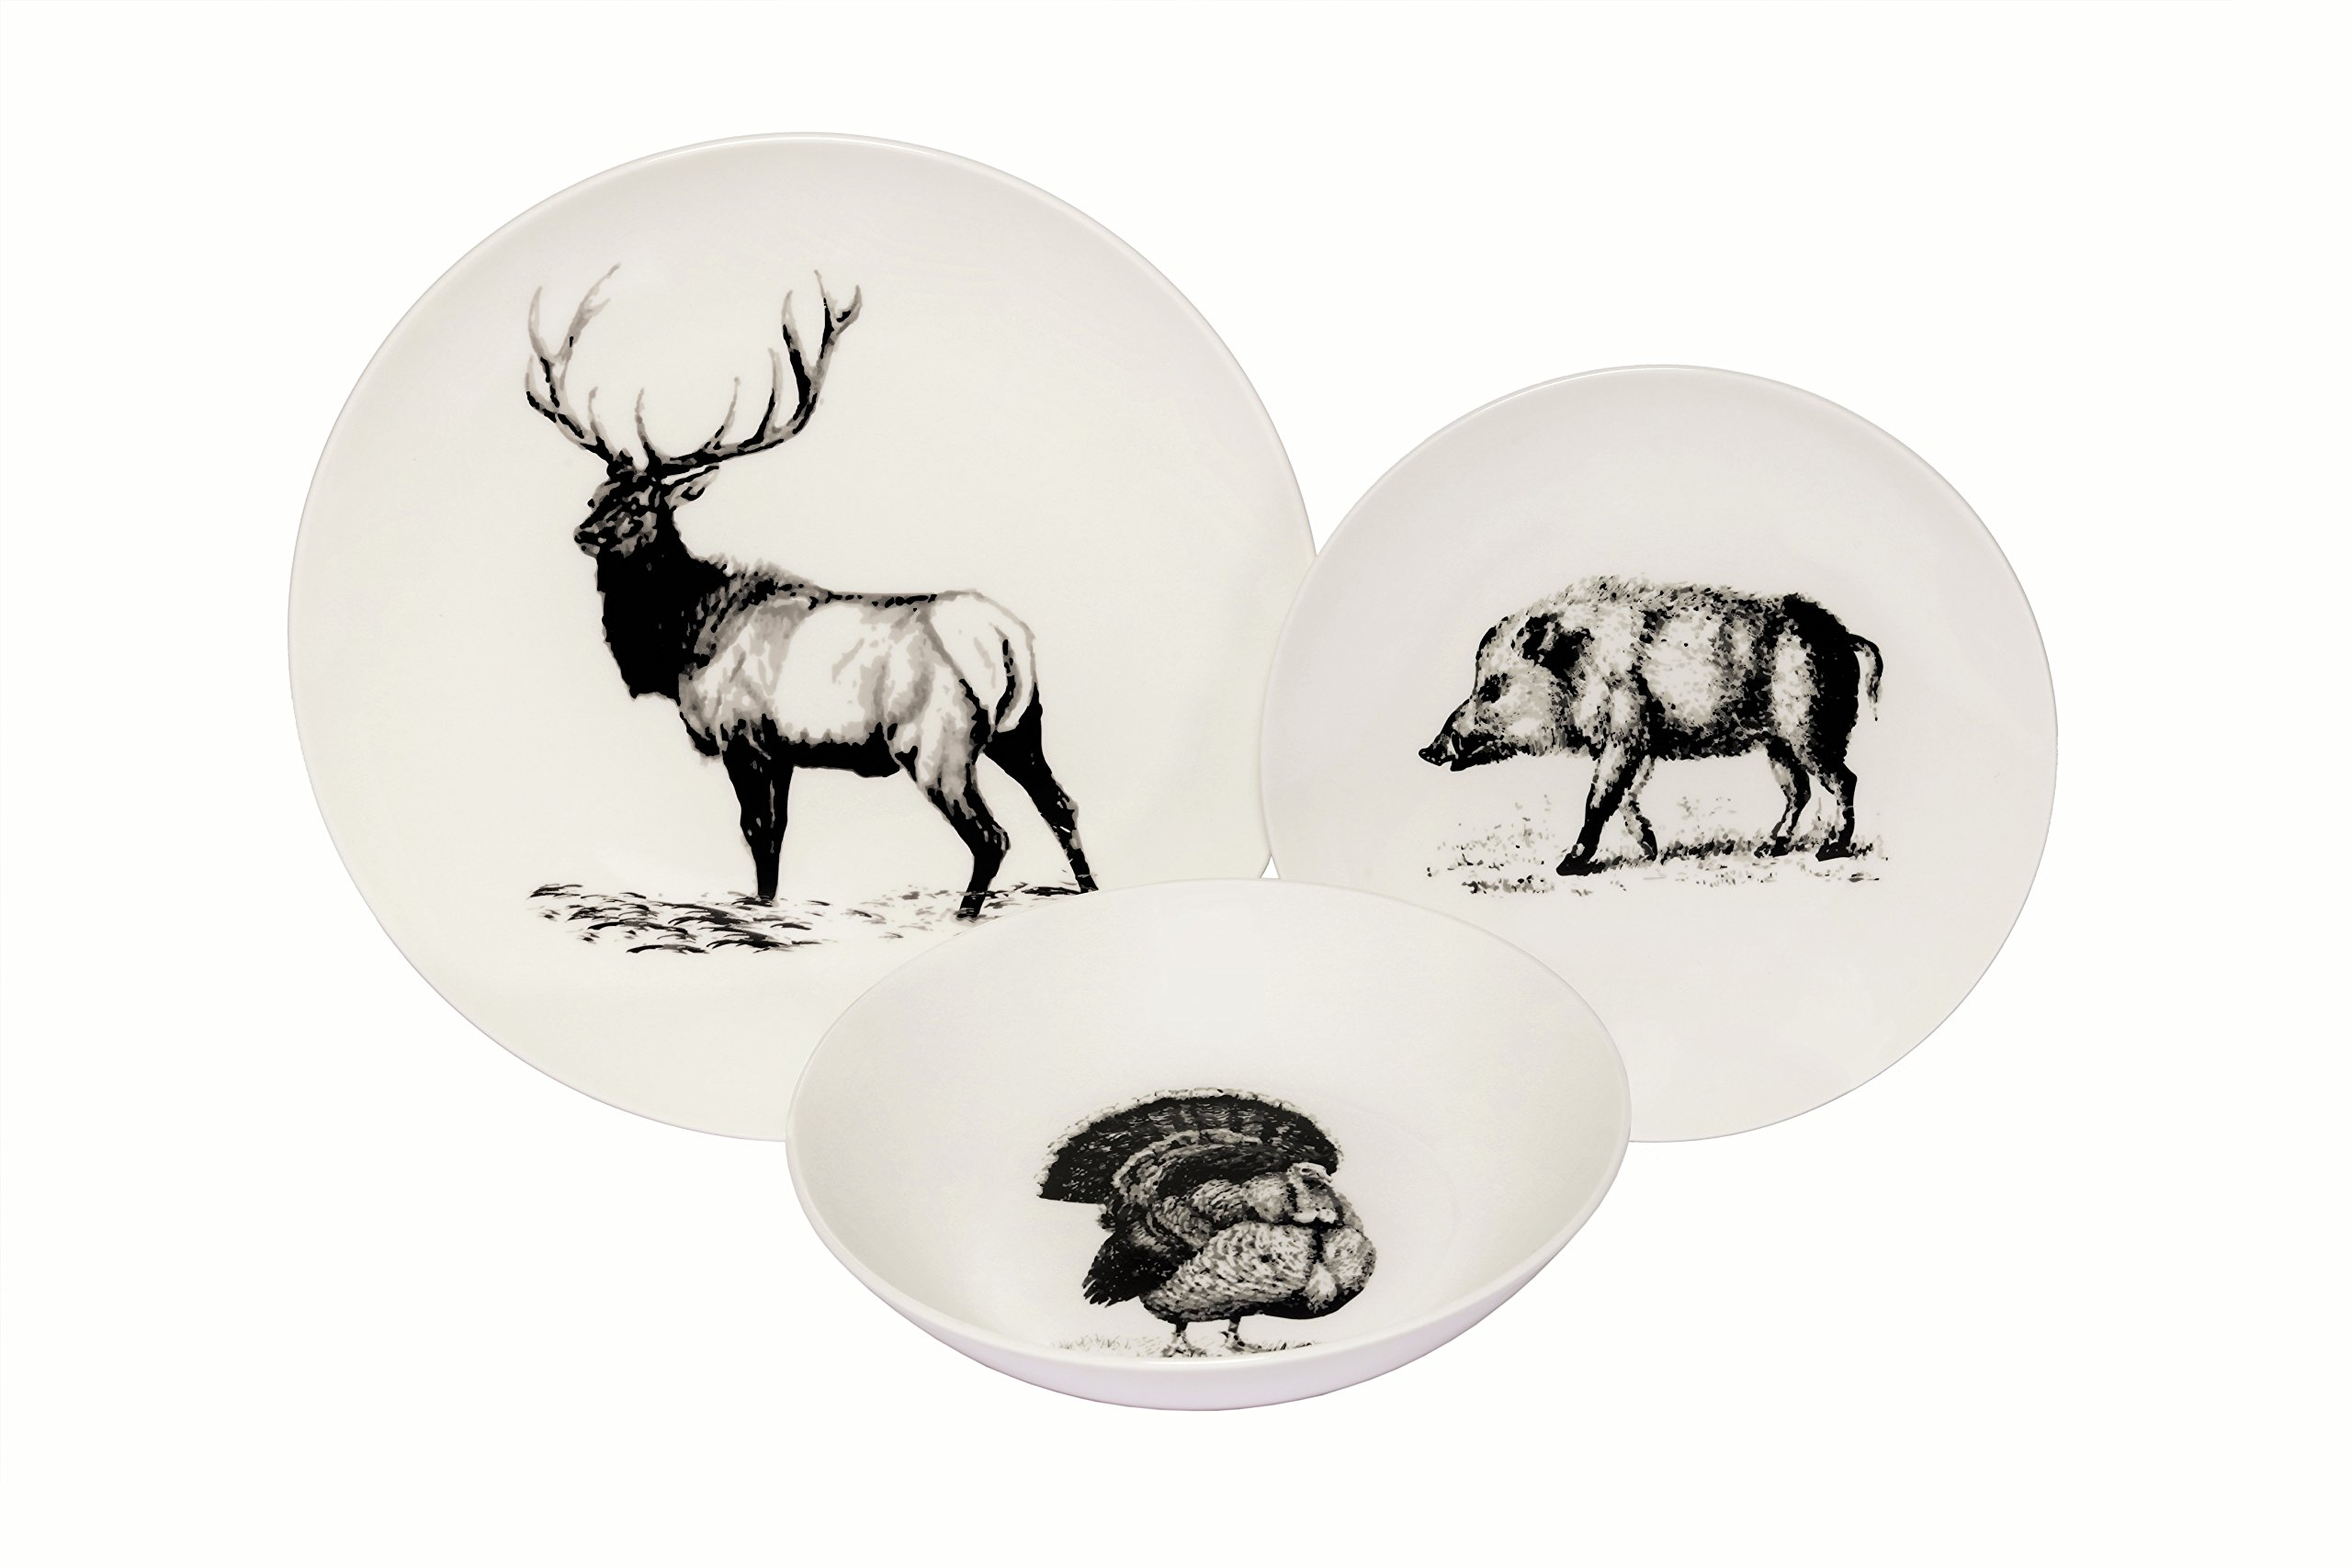 Melange Coupe 18-Piece Porcelain Dinnerware Set (Wild Animals) | Service for 6 | Microwave, Dishwasher & Oven Safe | Dinner Plate, Salad Plate & Soup Bowl (6 Each)